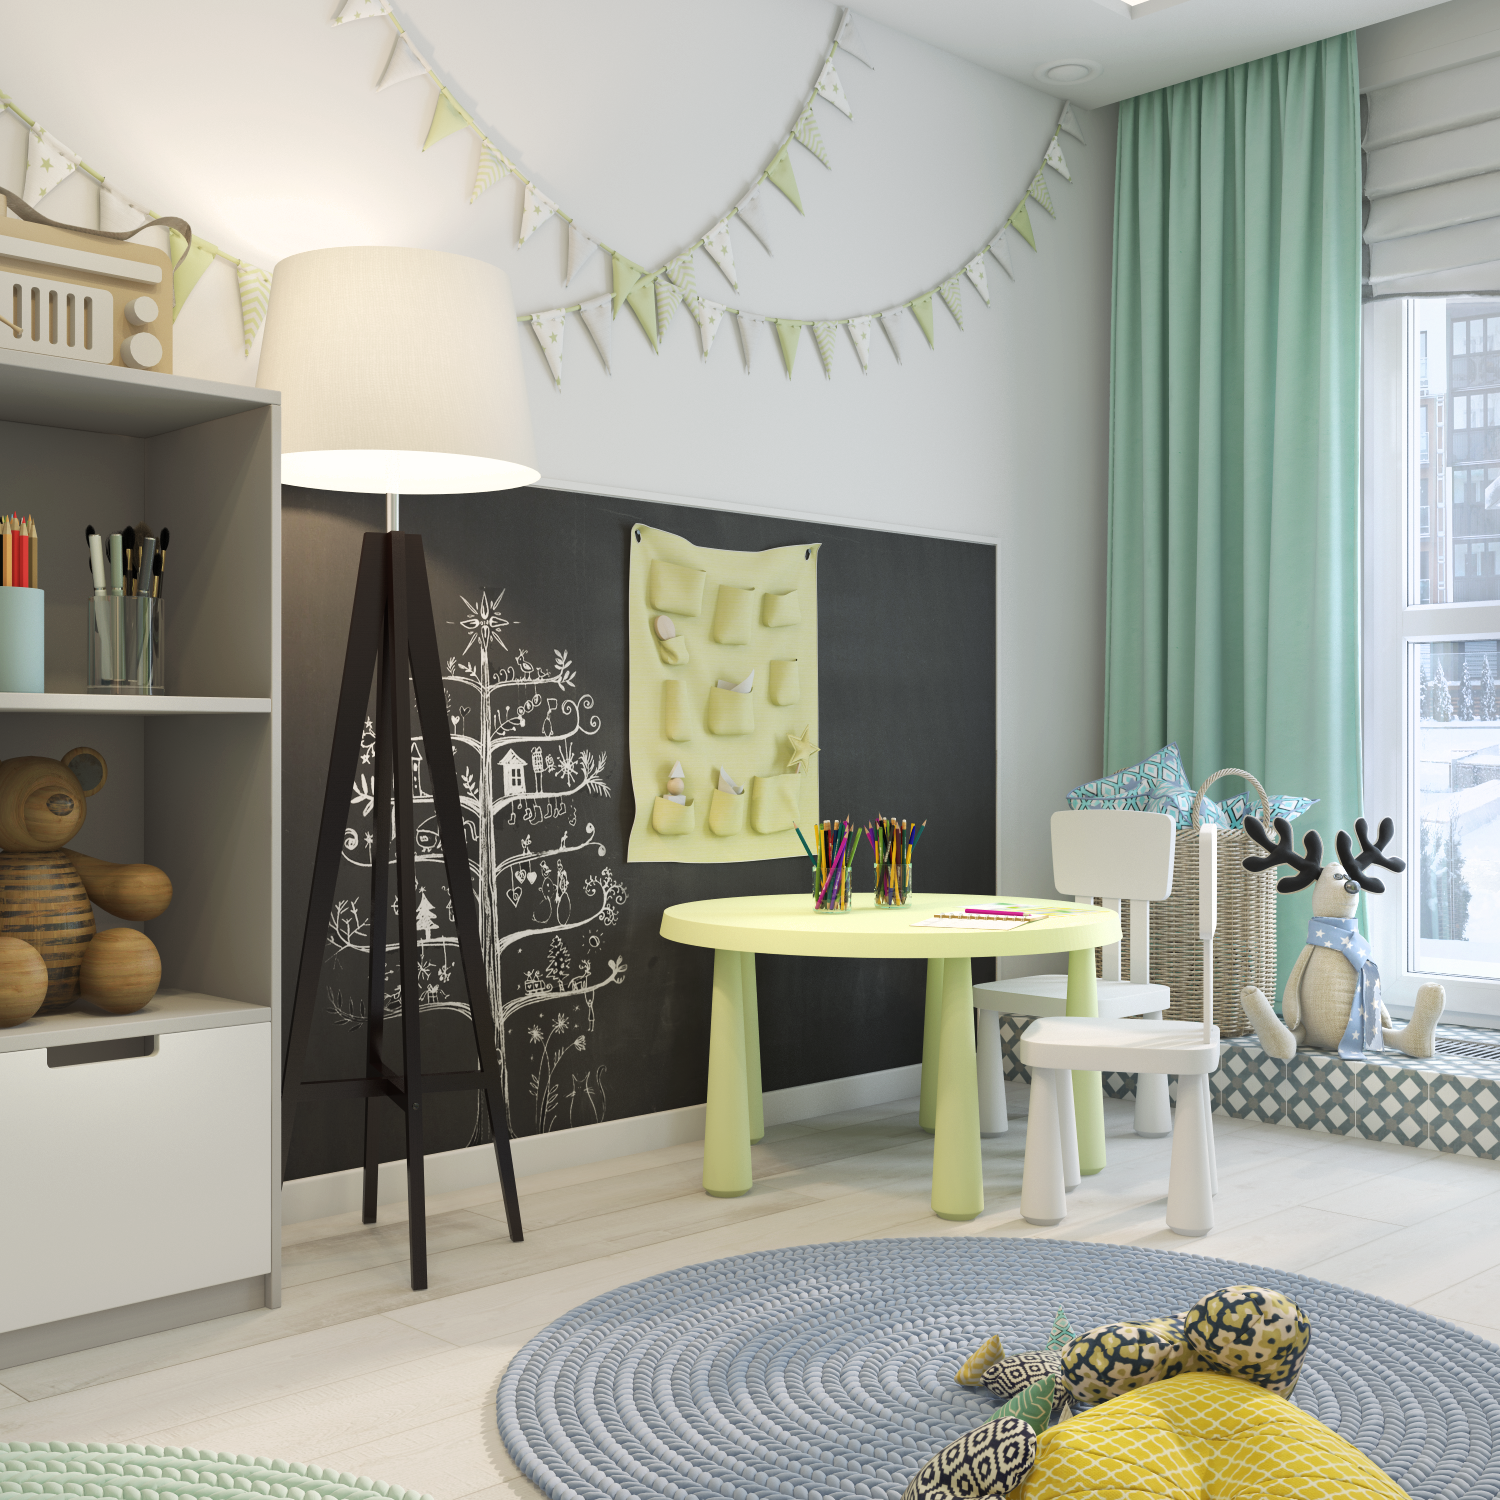 Interior design of children's bedroom the childrenus room is associated with a constructor or a